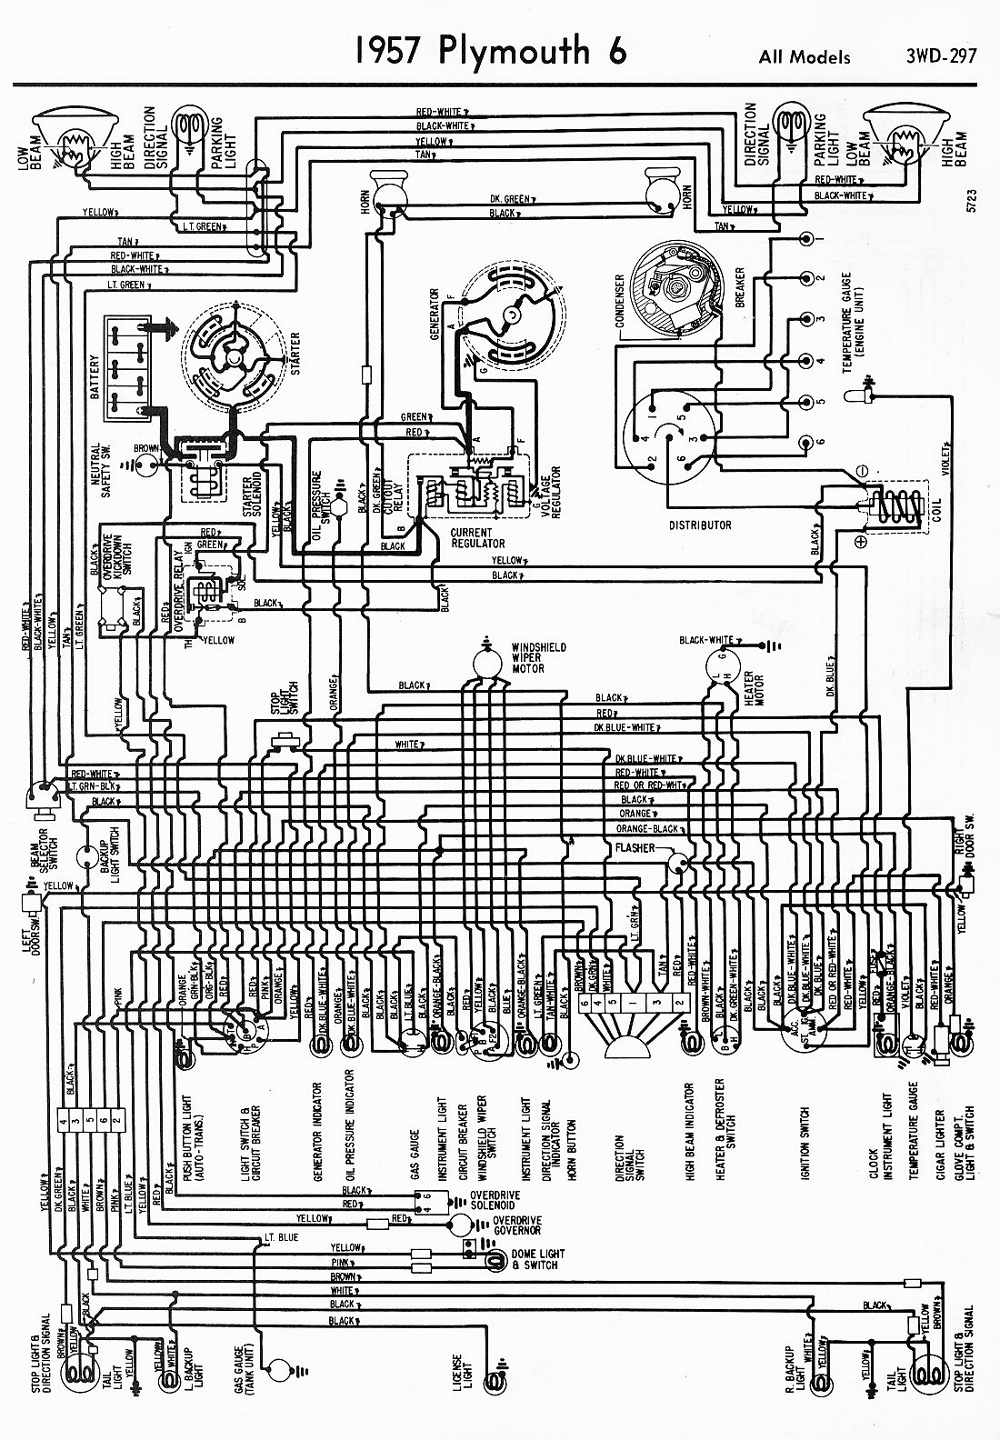 hight resolution of 1957 plymouth wiring diagram wiring diagram portal rh 14 1 kaminari music de mymopar wiring diagrams for 1951 plymouth 1950 plymouth wiring harness